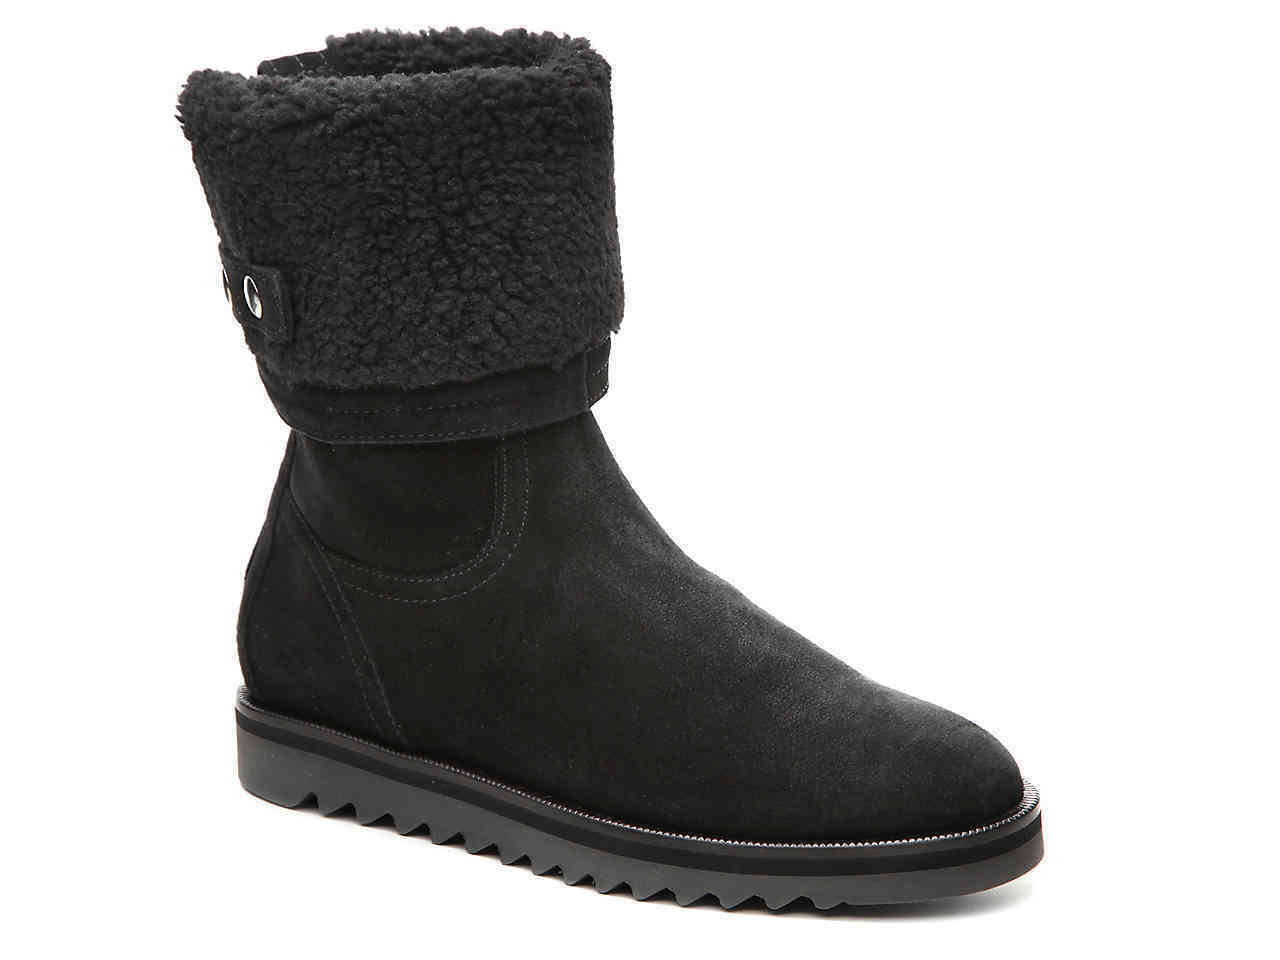 495 AQUATALIA New Perdi Bootie Weatherproof Cuff Ankle Black Suede Boot 5 6 6.5